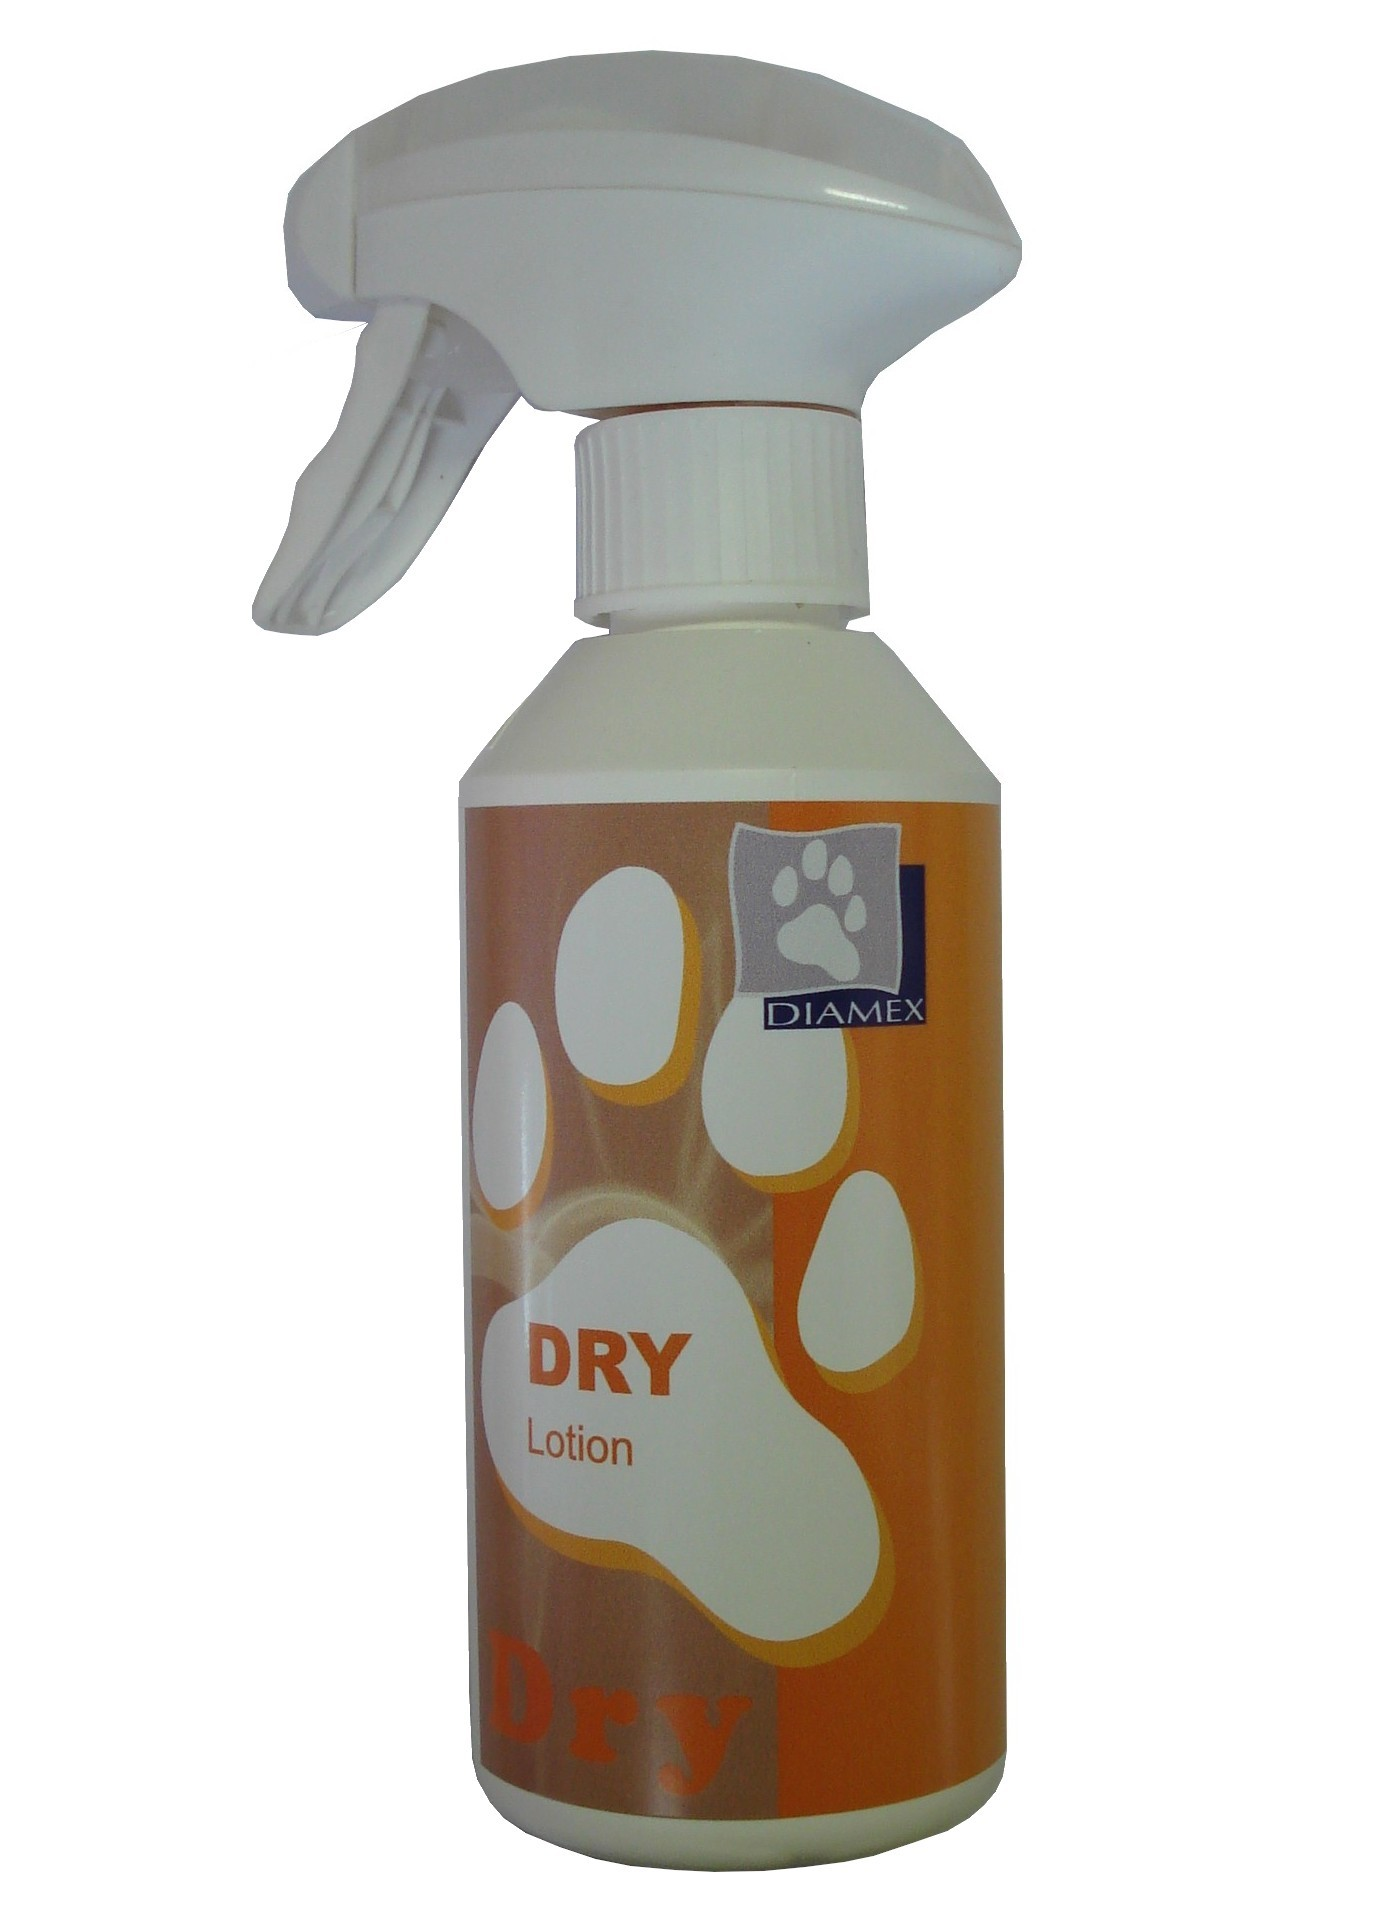 Diamex Shampoo Dry Lotion